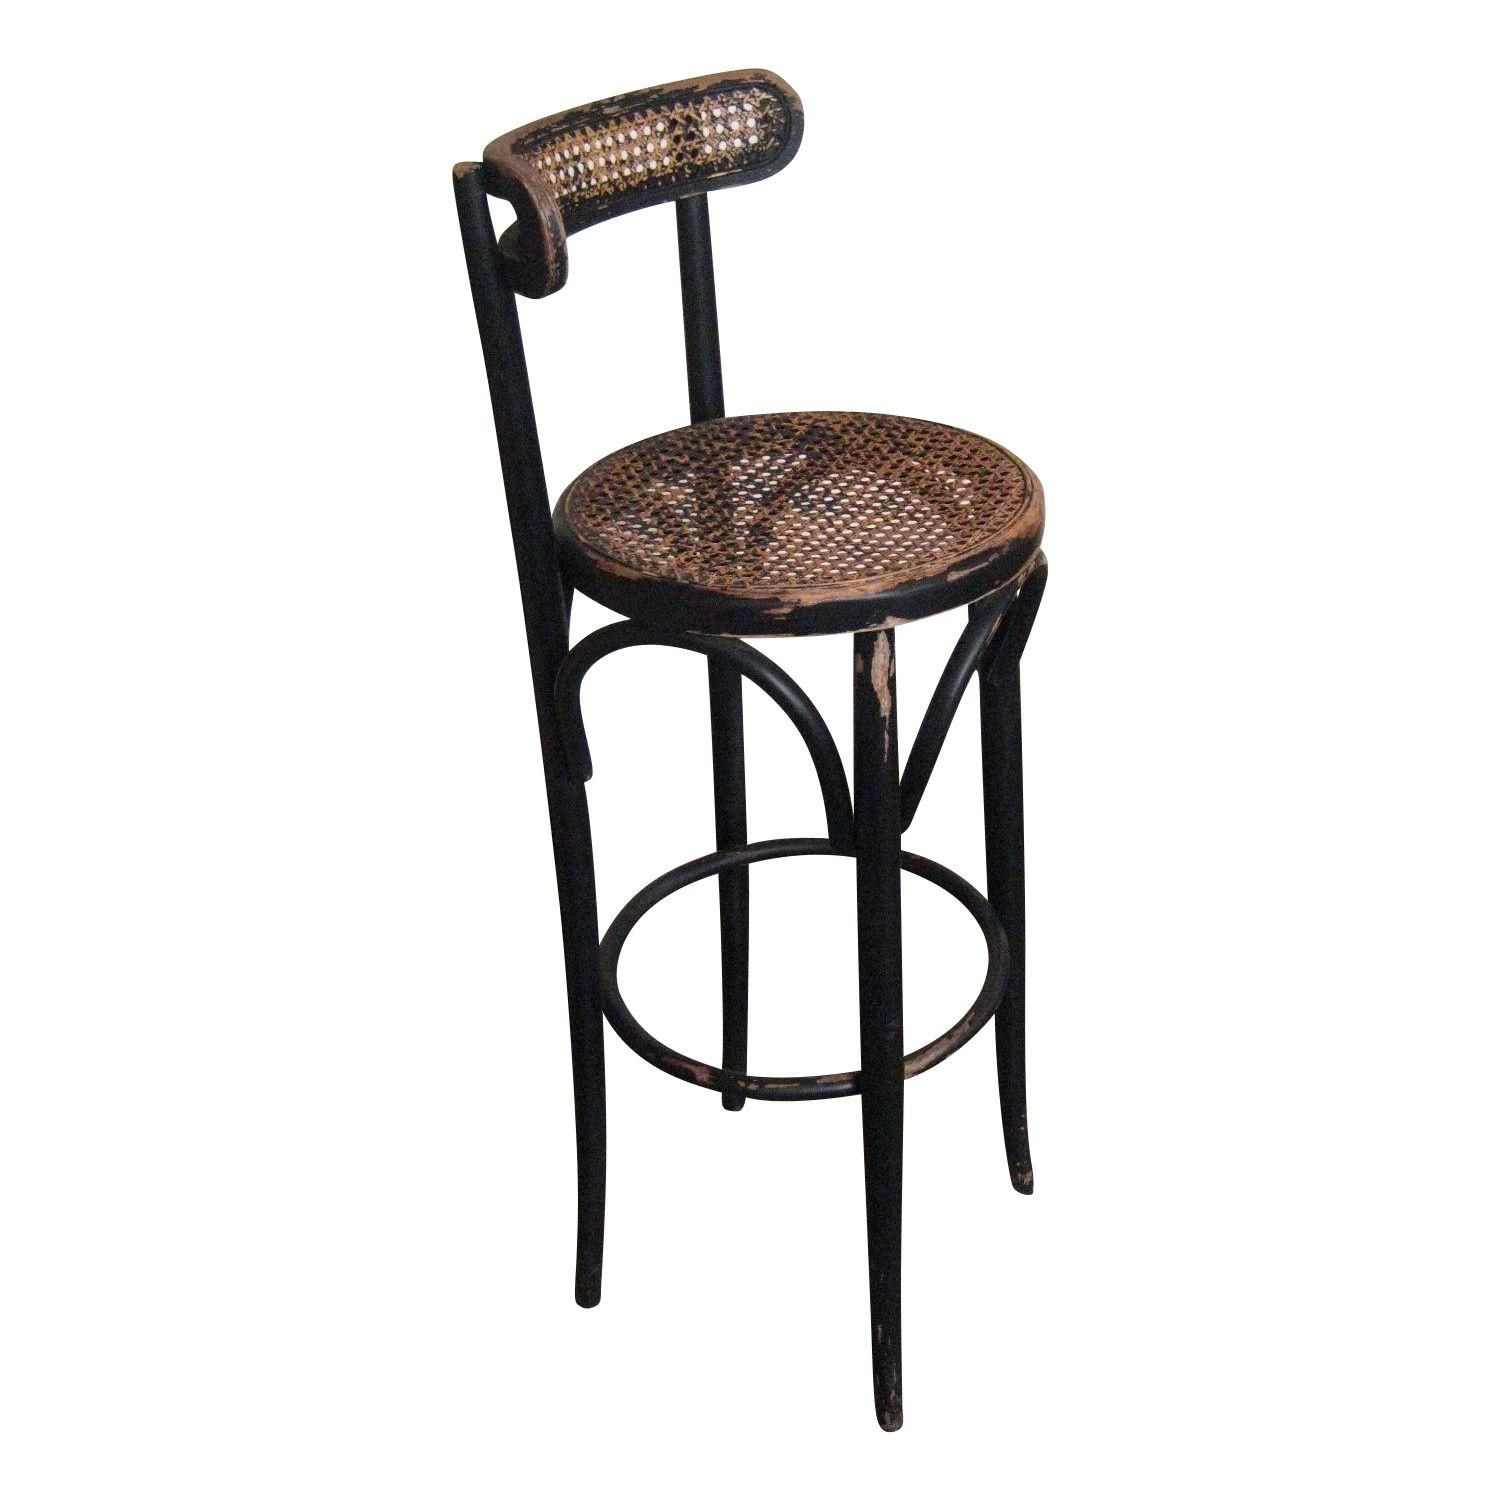 A Bistro Classic 1920s Thonet Style Bentwood Bar Stool In Original Aged Black Paint Finished The S Traditional Style Bar Stools Bar Stools Modern Bar Stools